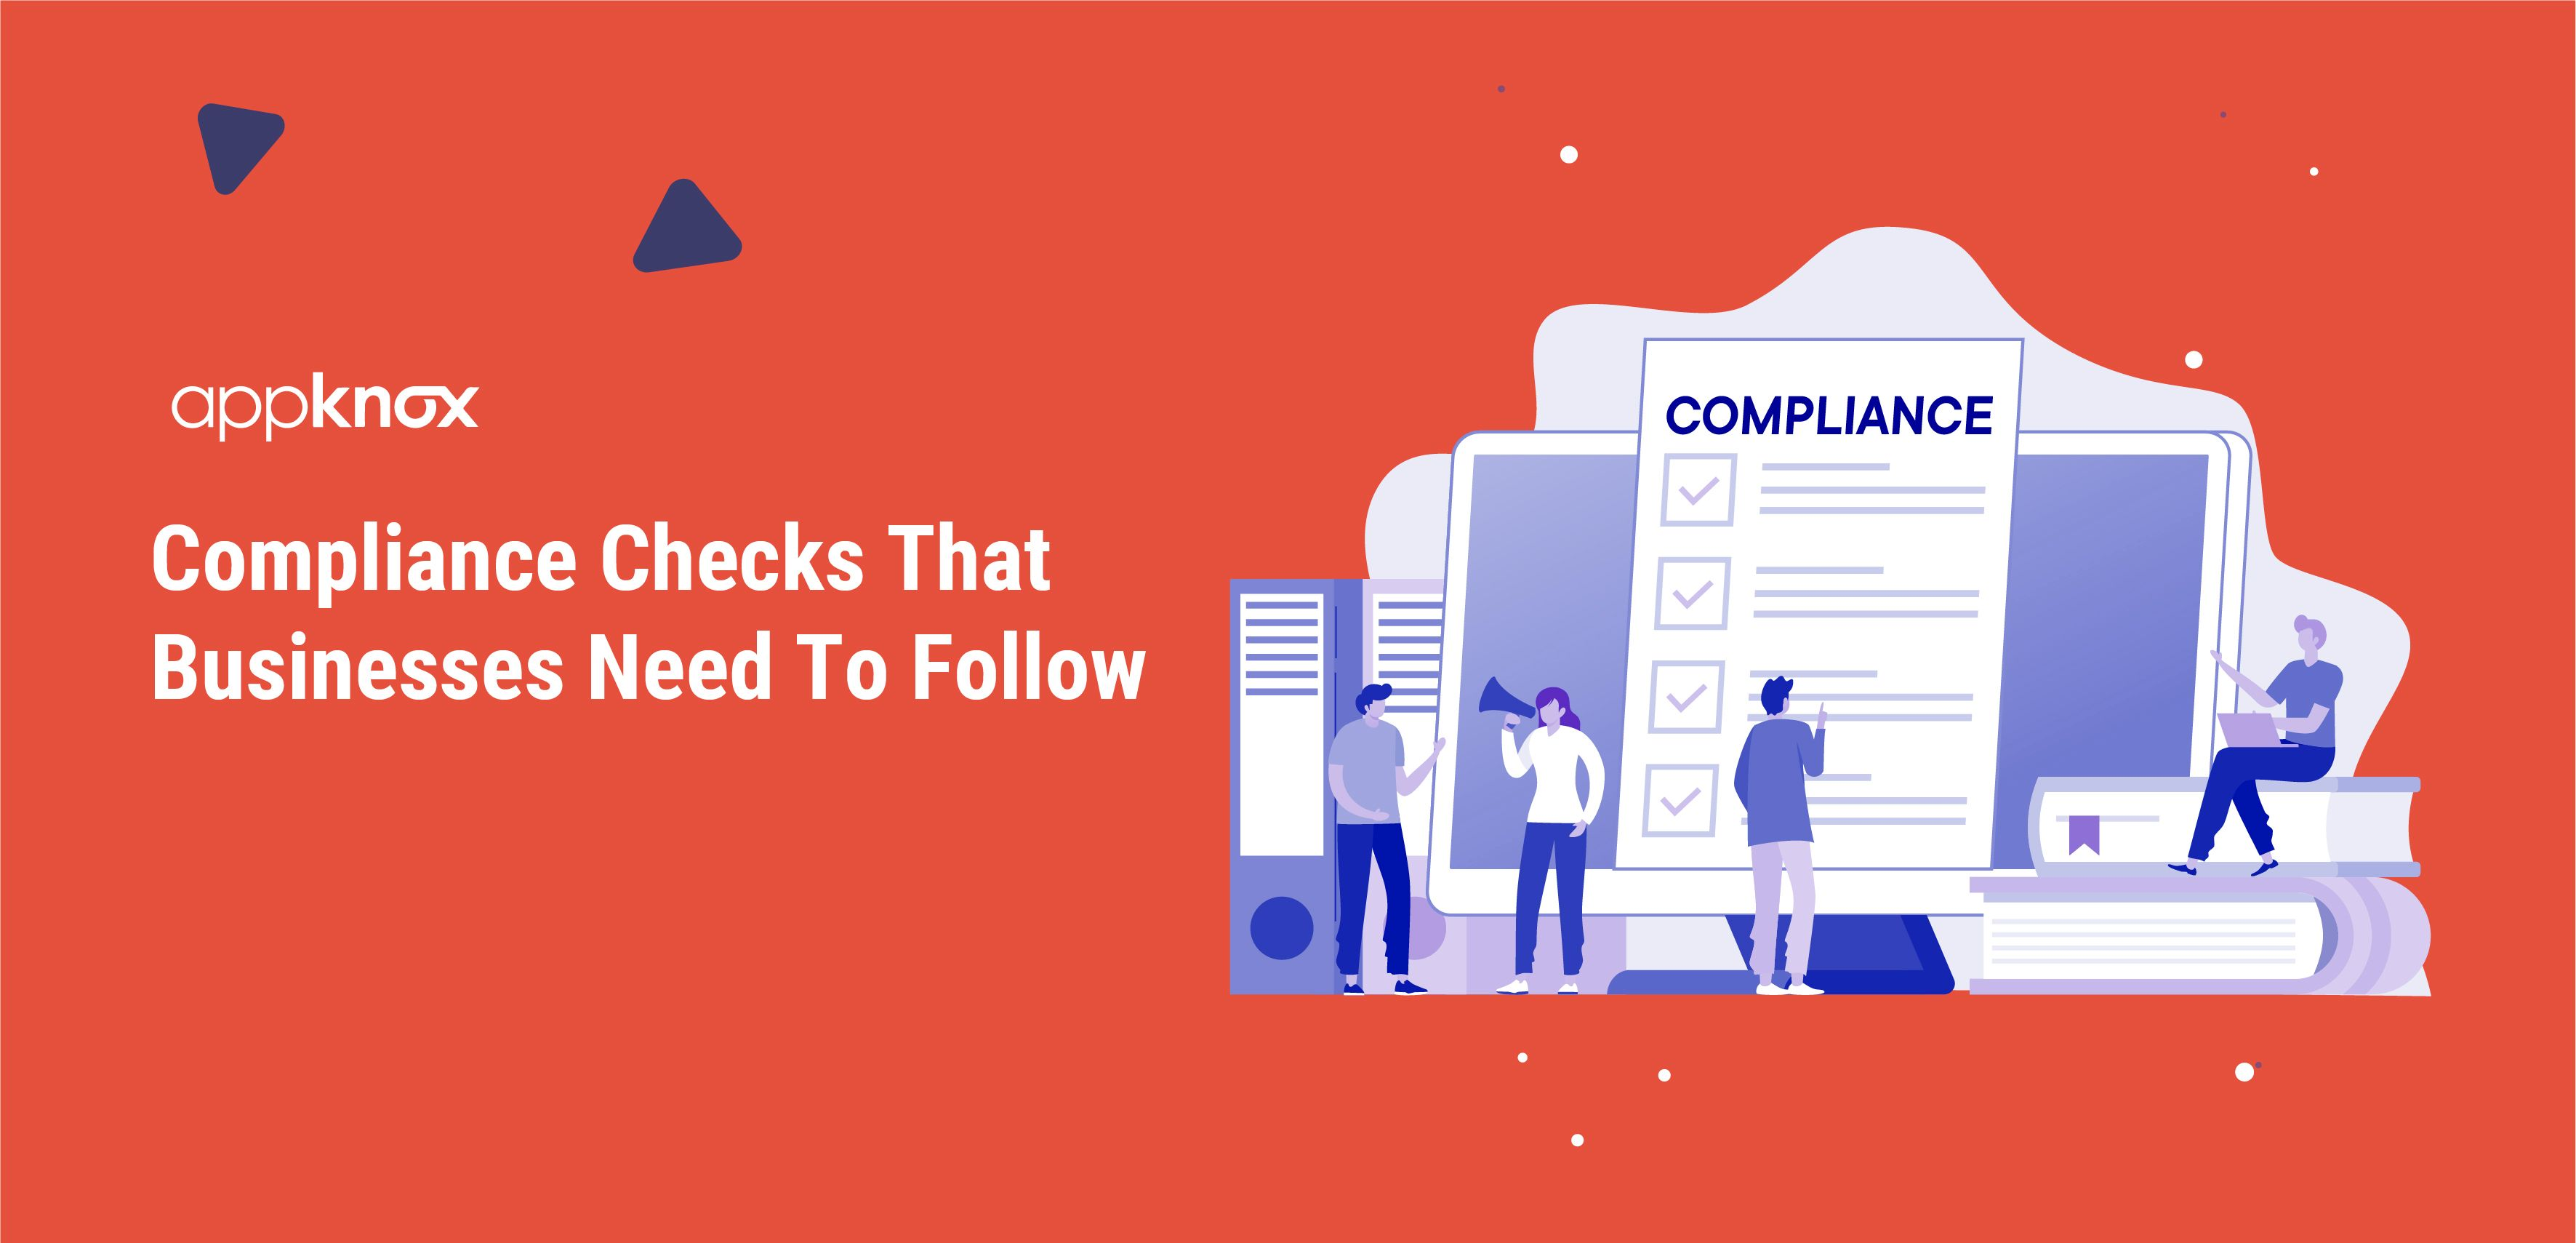 Compliance Checks That Businesses Need To Follow